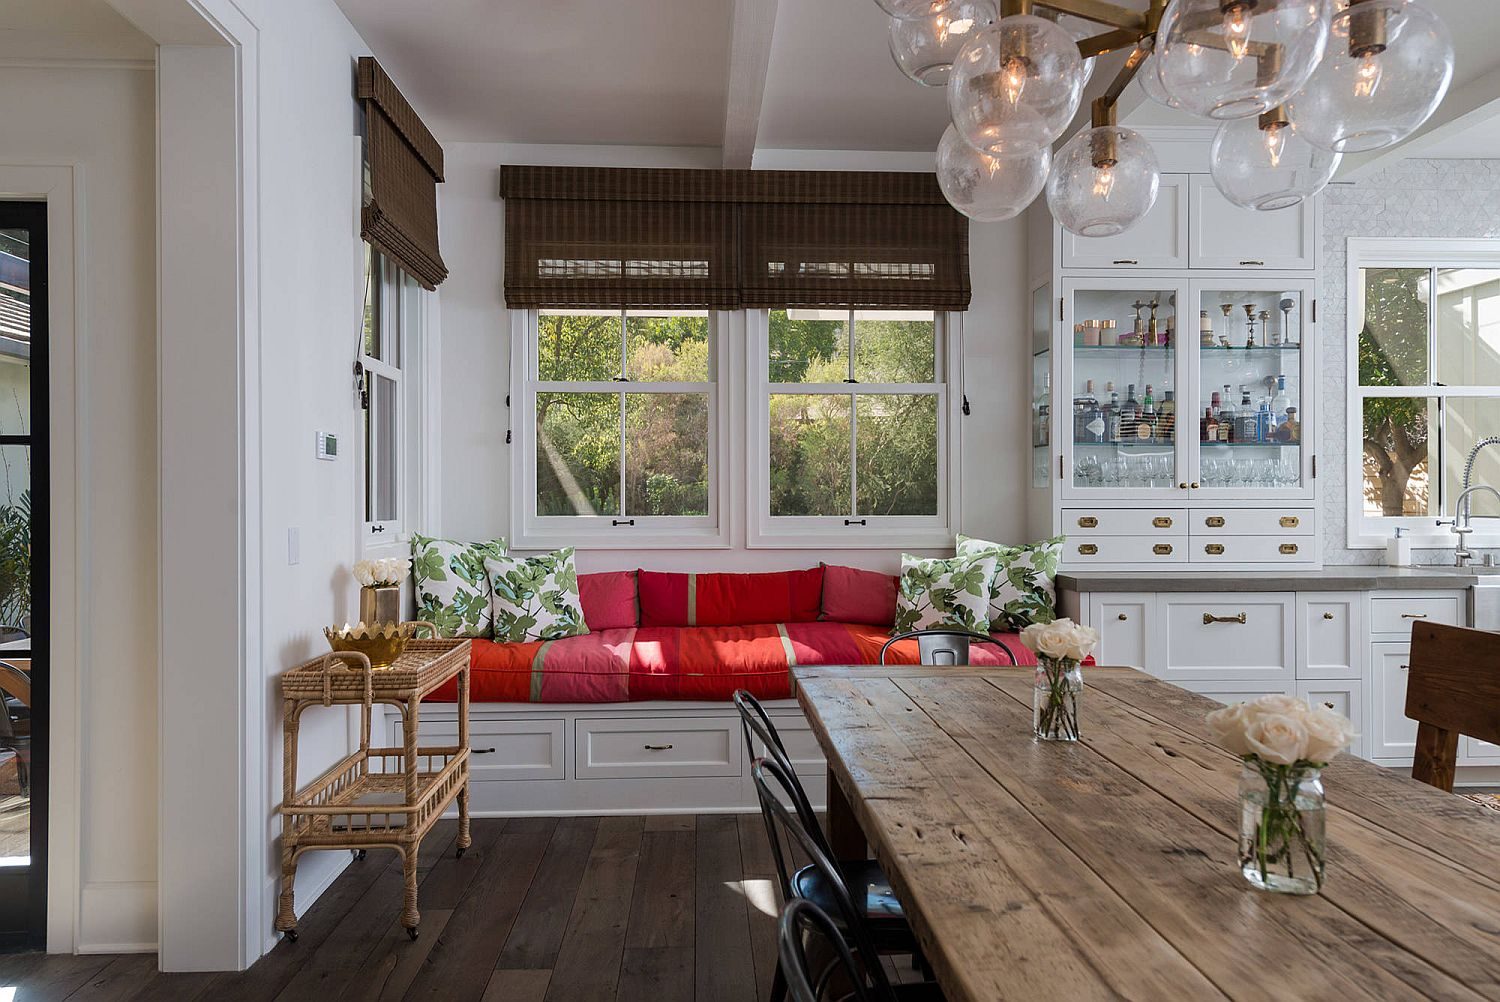 Built-in-bench-and-window-seat-for-the-kitchen-with-colorful-cushions-and-storage-options